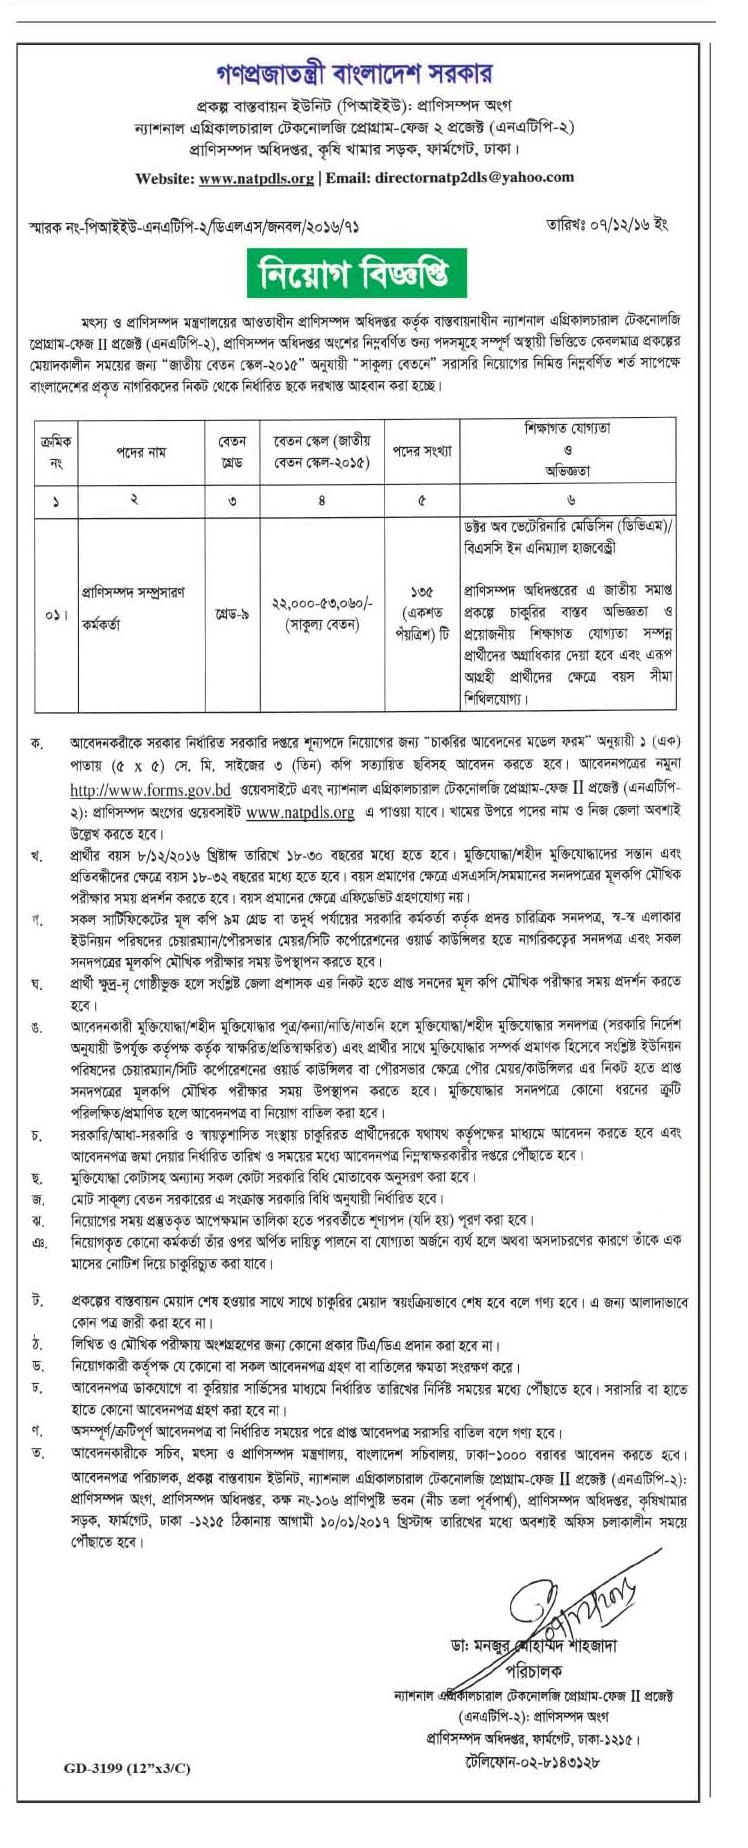 National Agricultural Technology Program Job Circular December 2016.